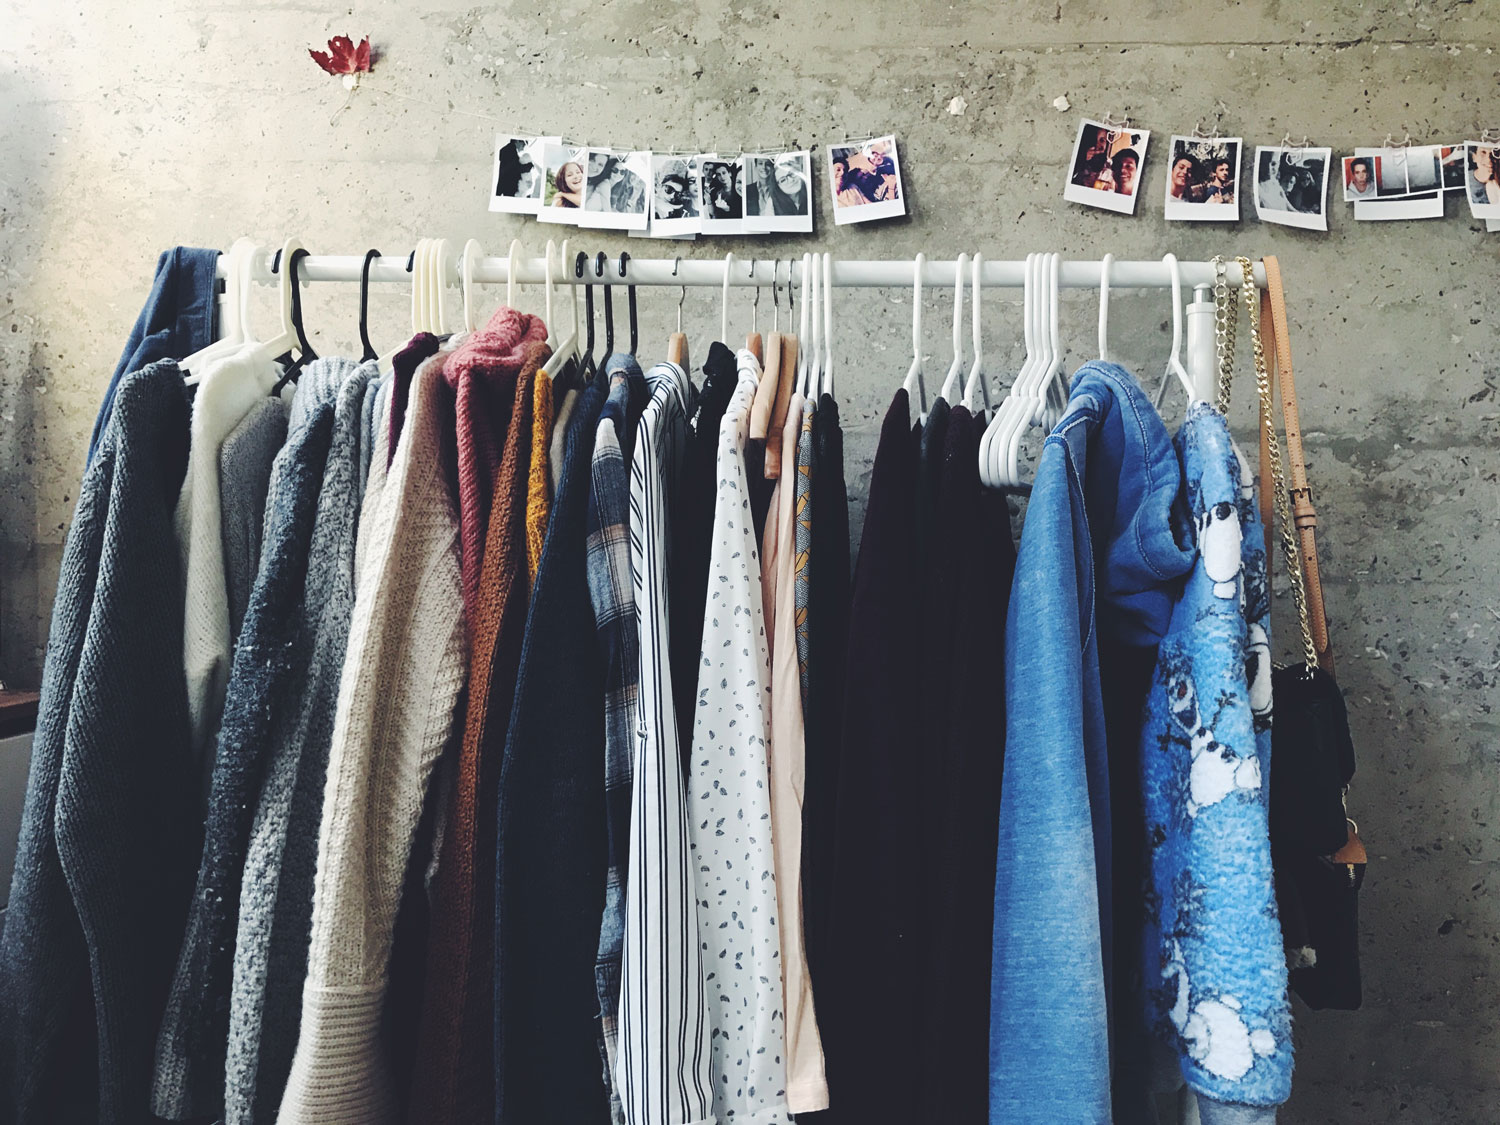 clothes of various designs and colours hung on a white clothes rack